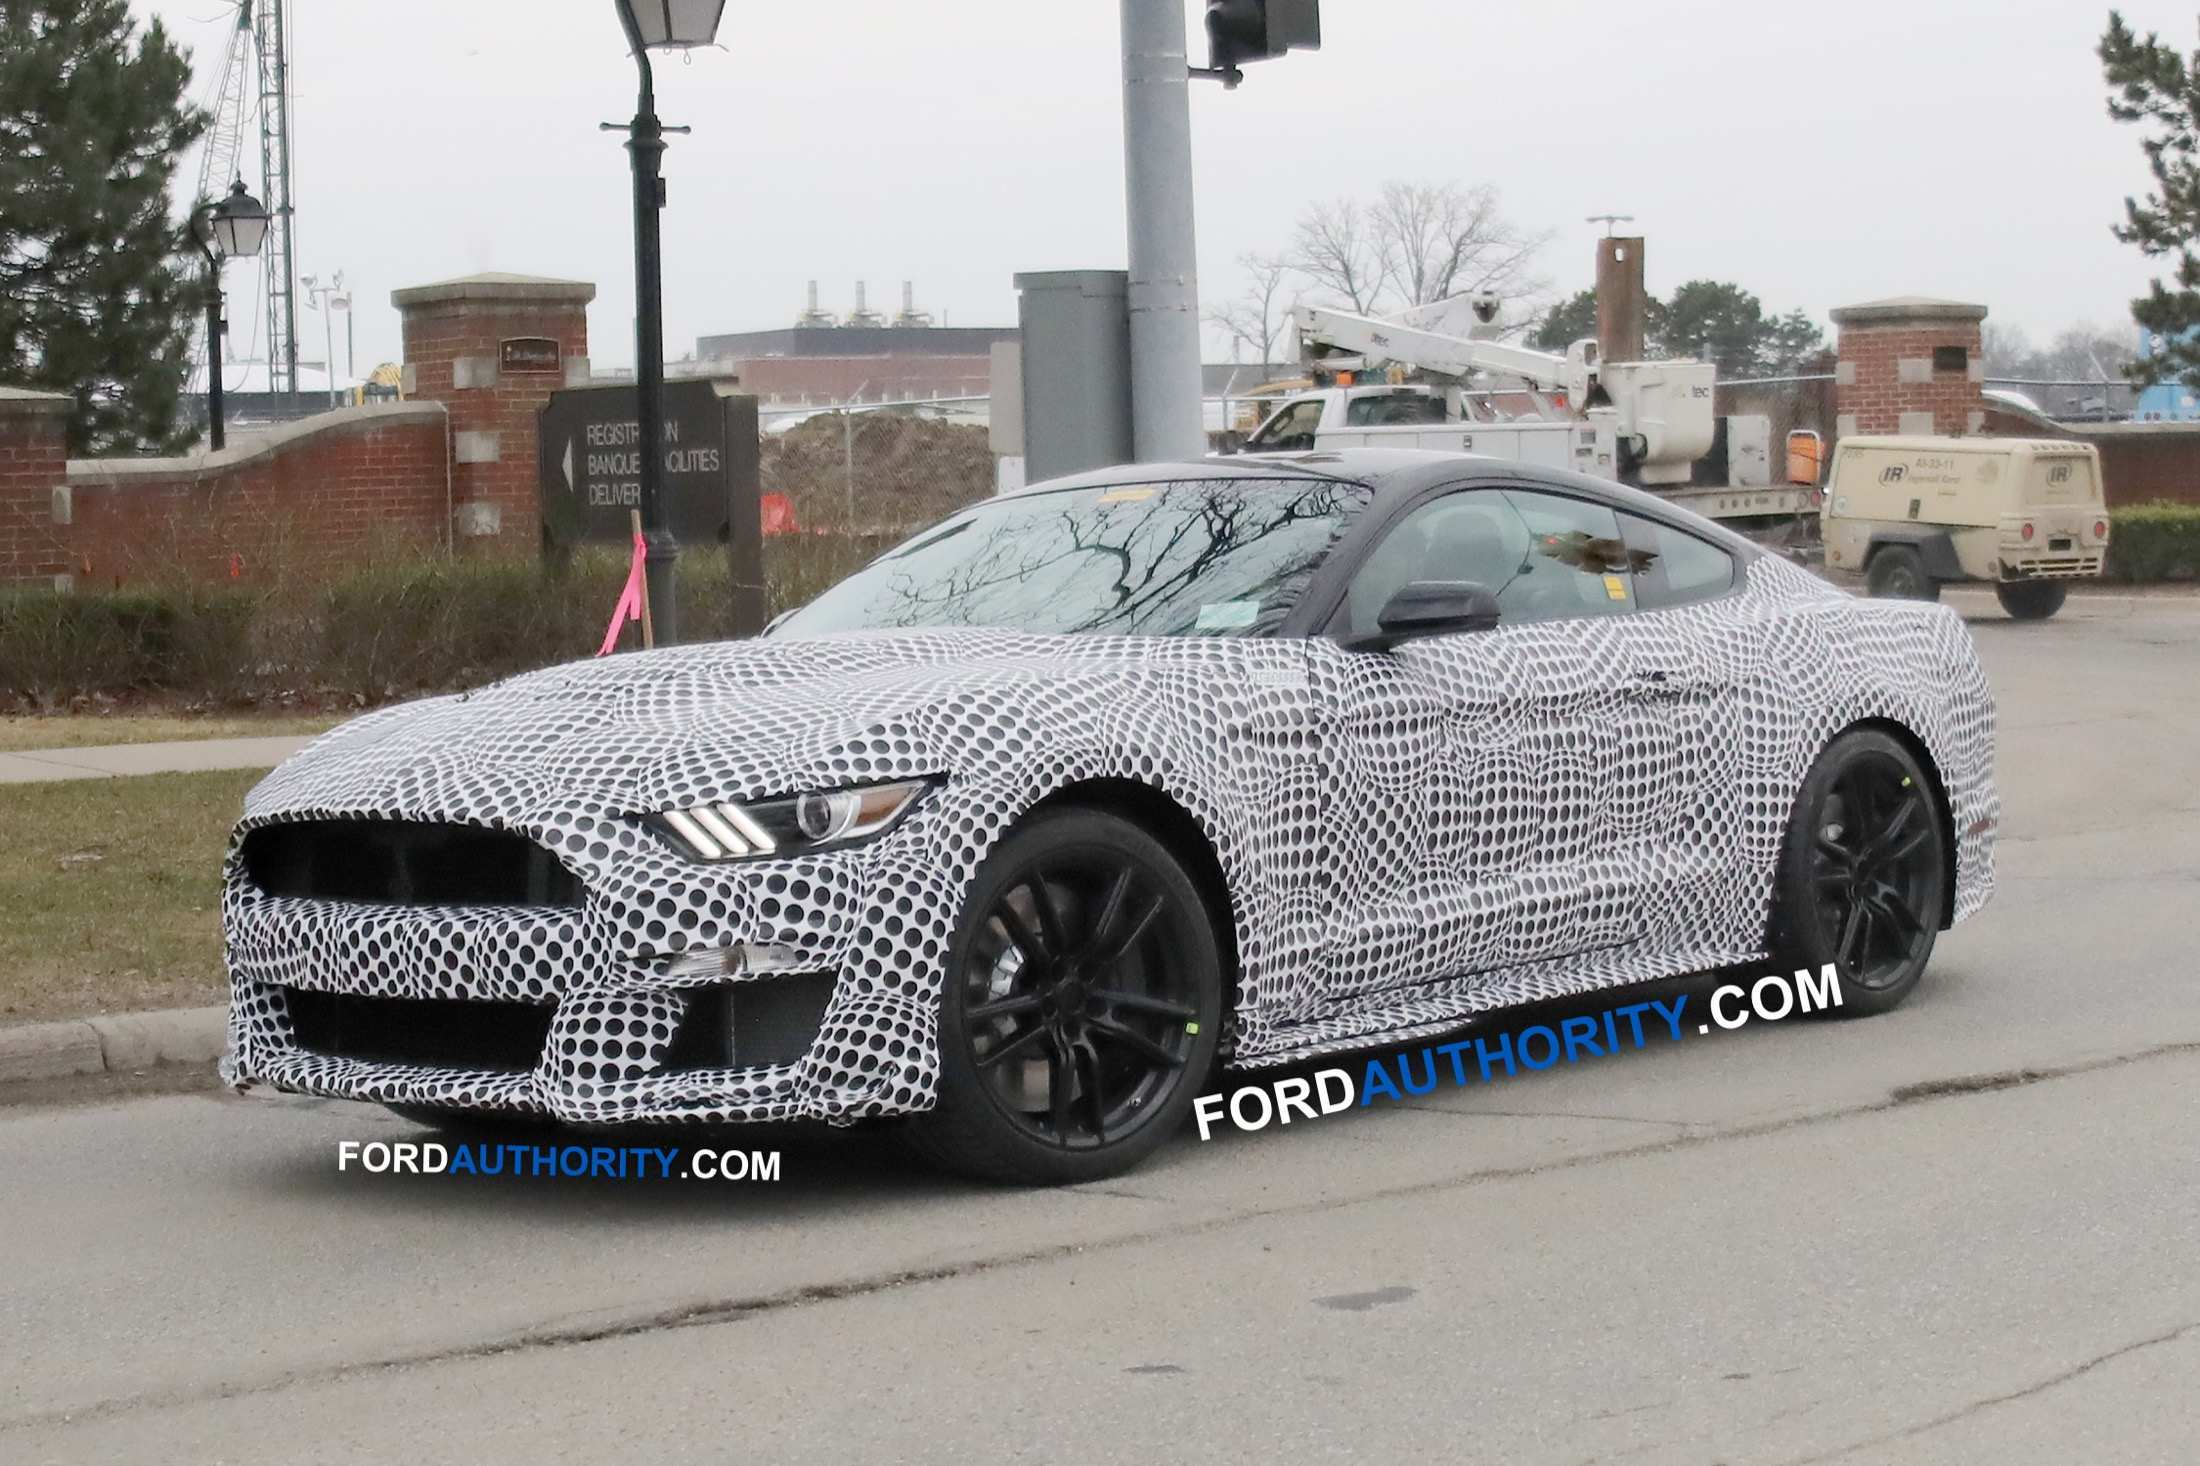 42 Concept of 2020 The Spy Shots Ford Mustang Svt Gt 500 Pictures with 2020 The Spy Shots Ford Mustang Svt Gt 500